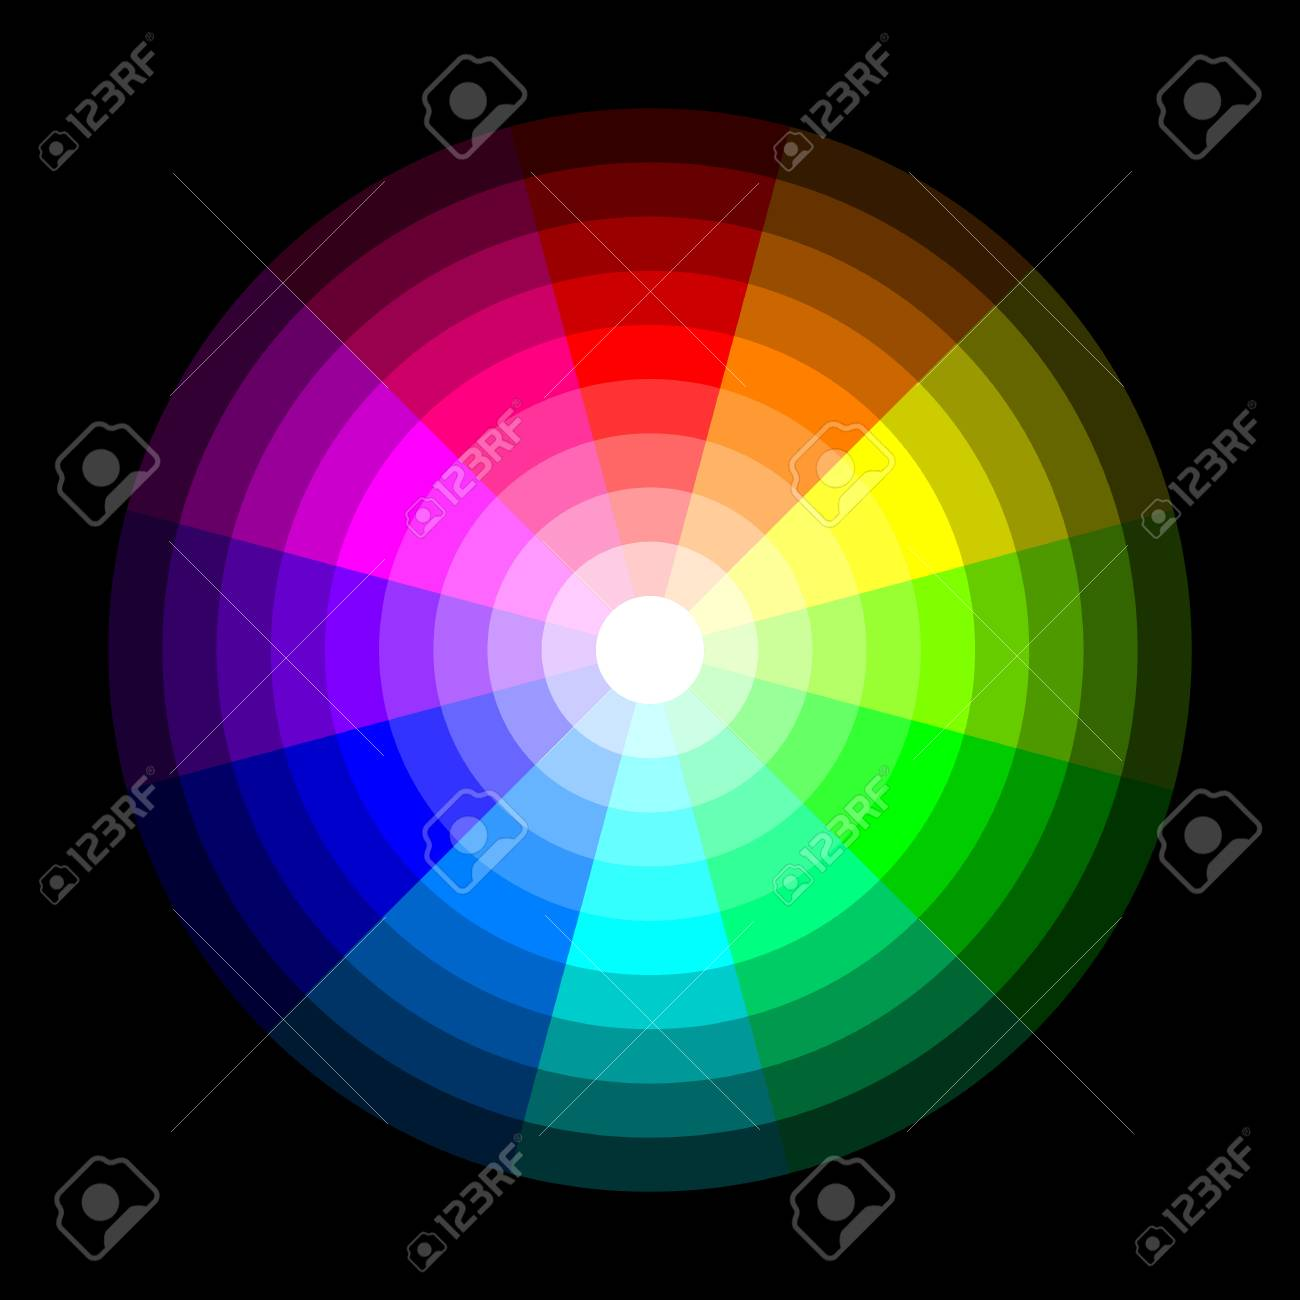 Rgb Color Wheel From Dark To Light On Black Background Vector